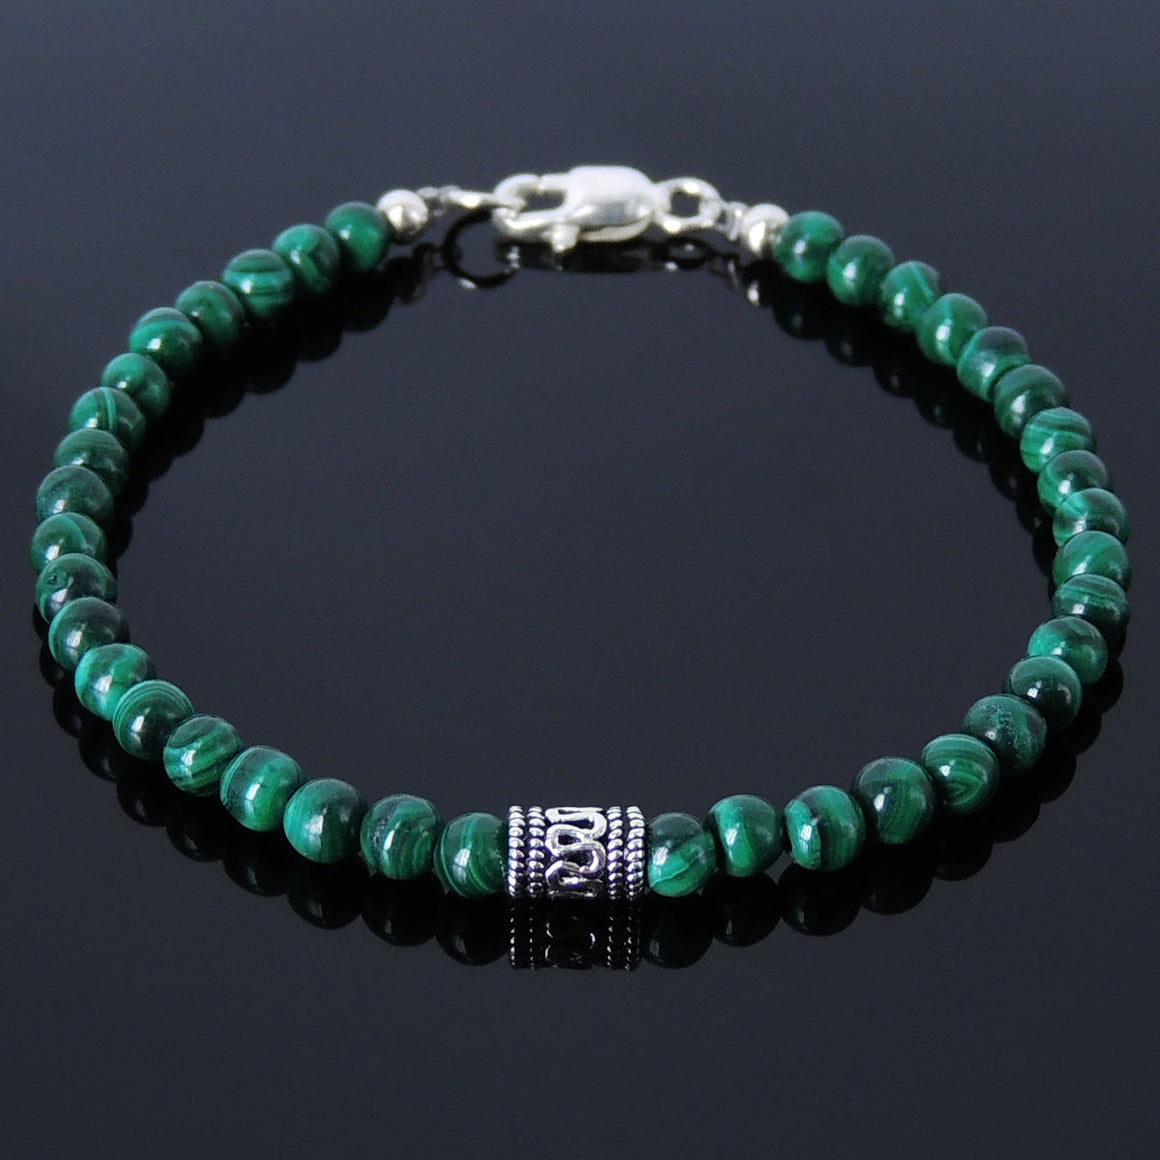 4.5mm Malachite Healing Gemstone Bracelet with S925 Sterling Silver Artisan Barrel Bead & Clasp - Handmade by Gem & Silver BR242